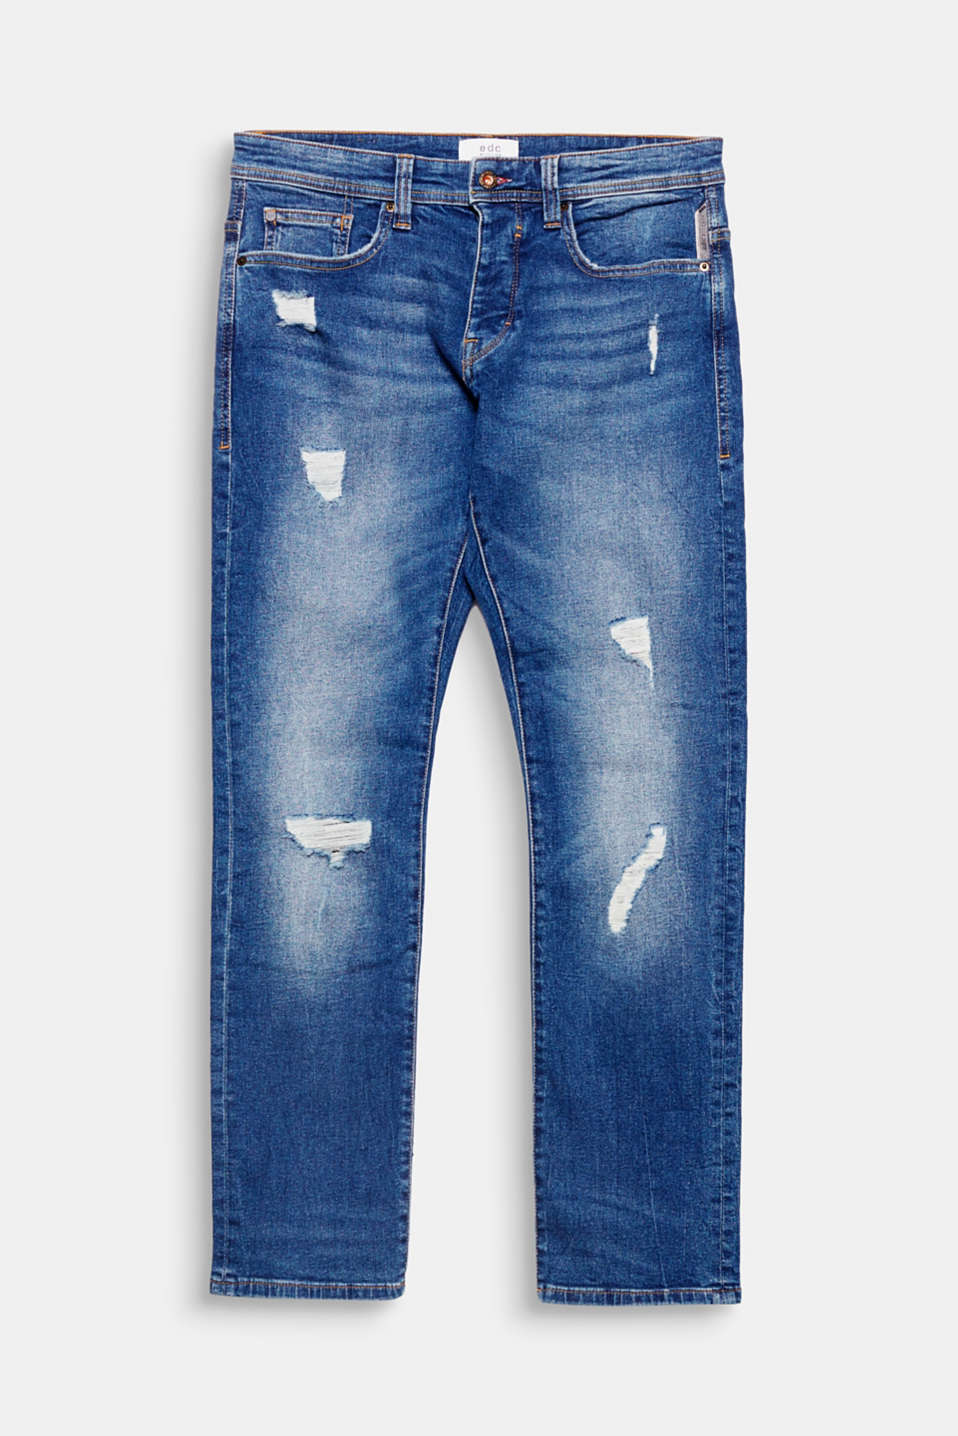 We love denim! Distinctive distressed effects give these five-pocket jeans a modern, urban look.